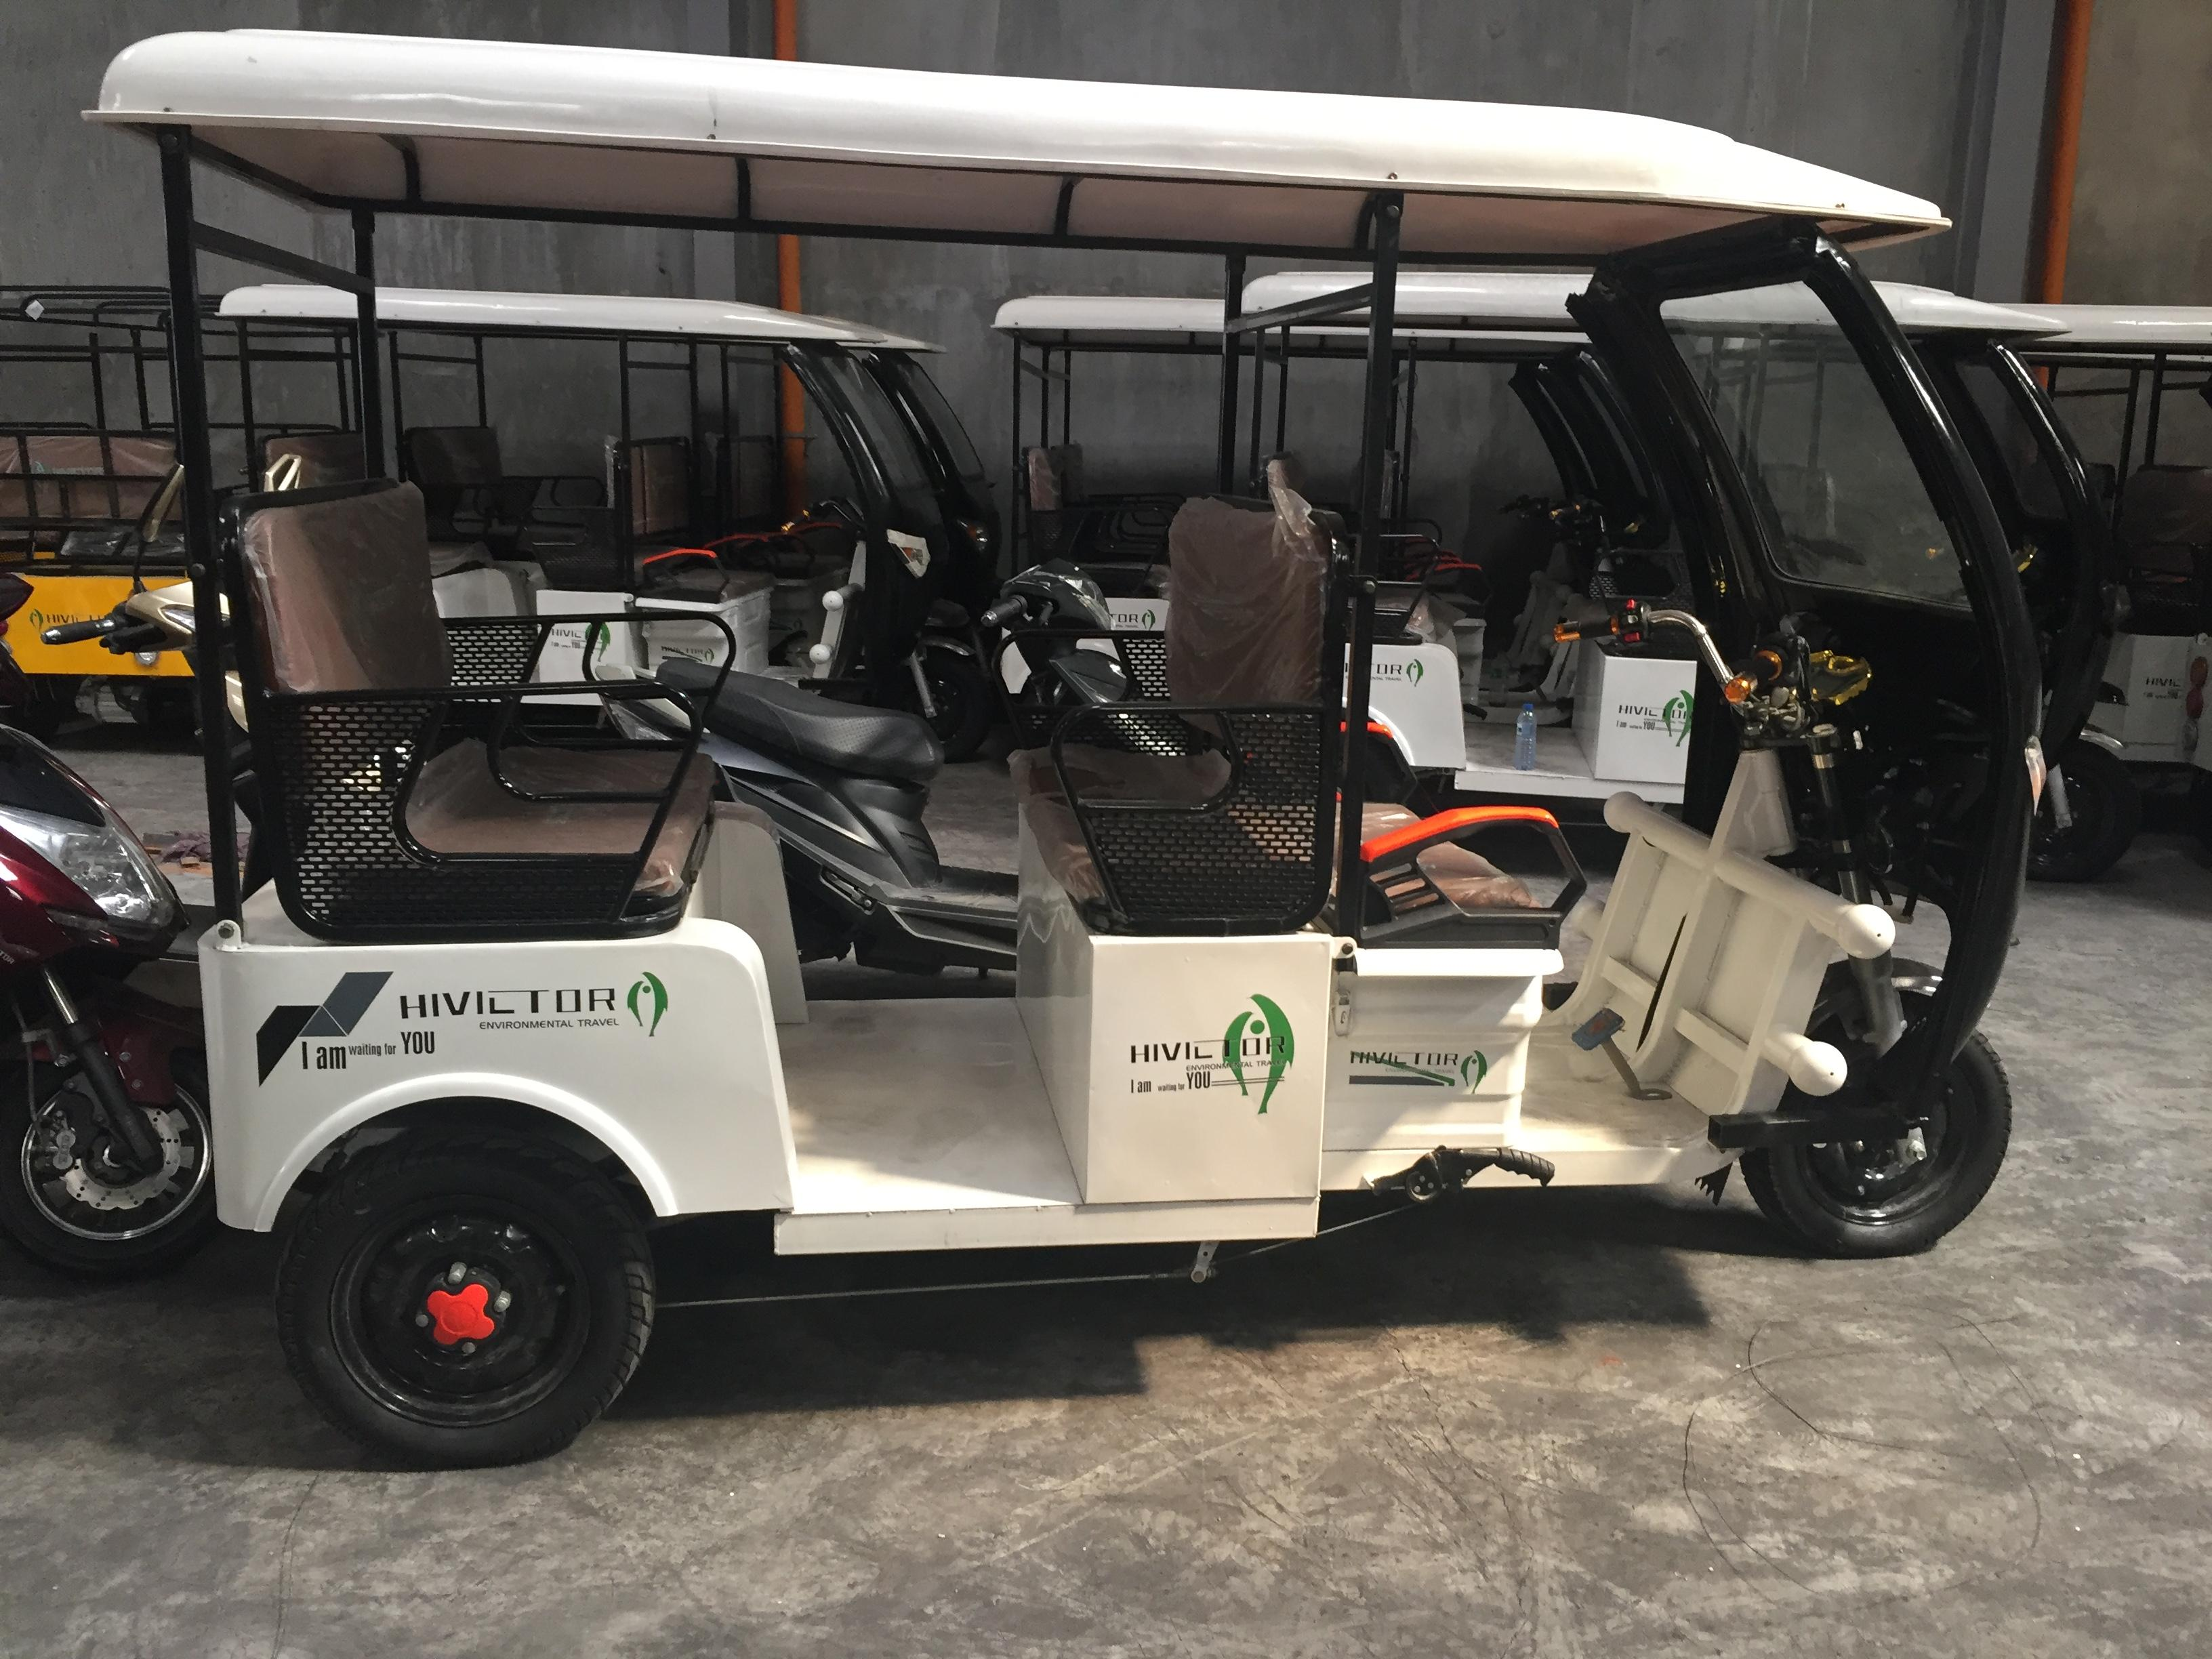 Electric Golf Cart (hiviltor) By Flow Shop.